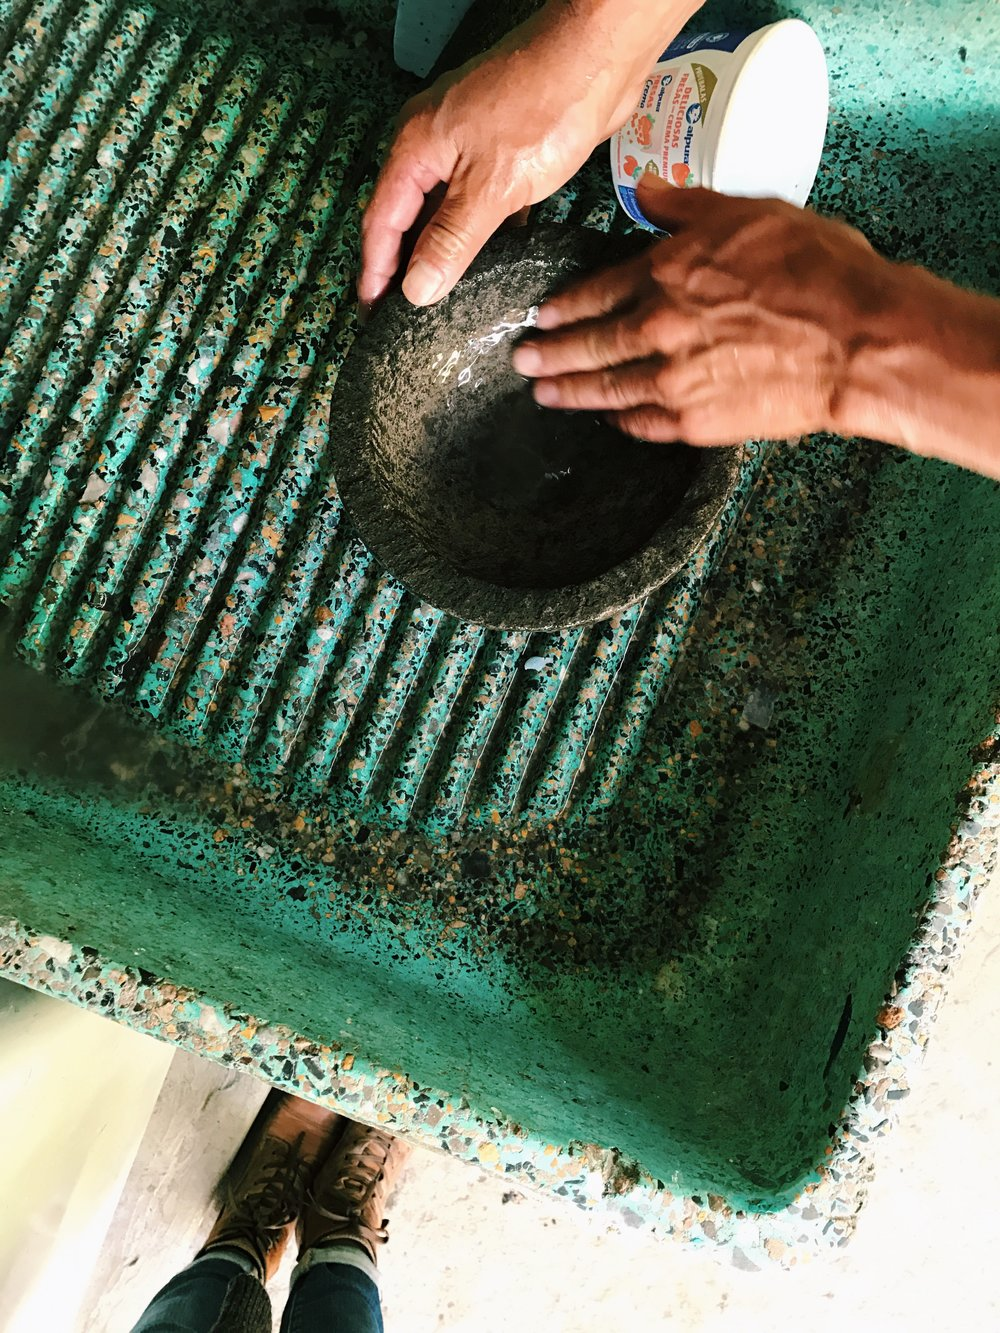 I bought a  molcajete      (a stone with a bowl carved into it used to grind things and make salsa) to bring home with me and here is my dad prepping it for me to make sure my first salsa in it isn't filled with a bunch of little rock (which is exactly what would have happened! Ha!)